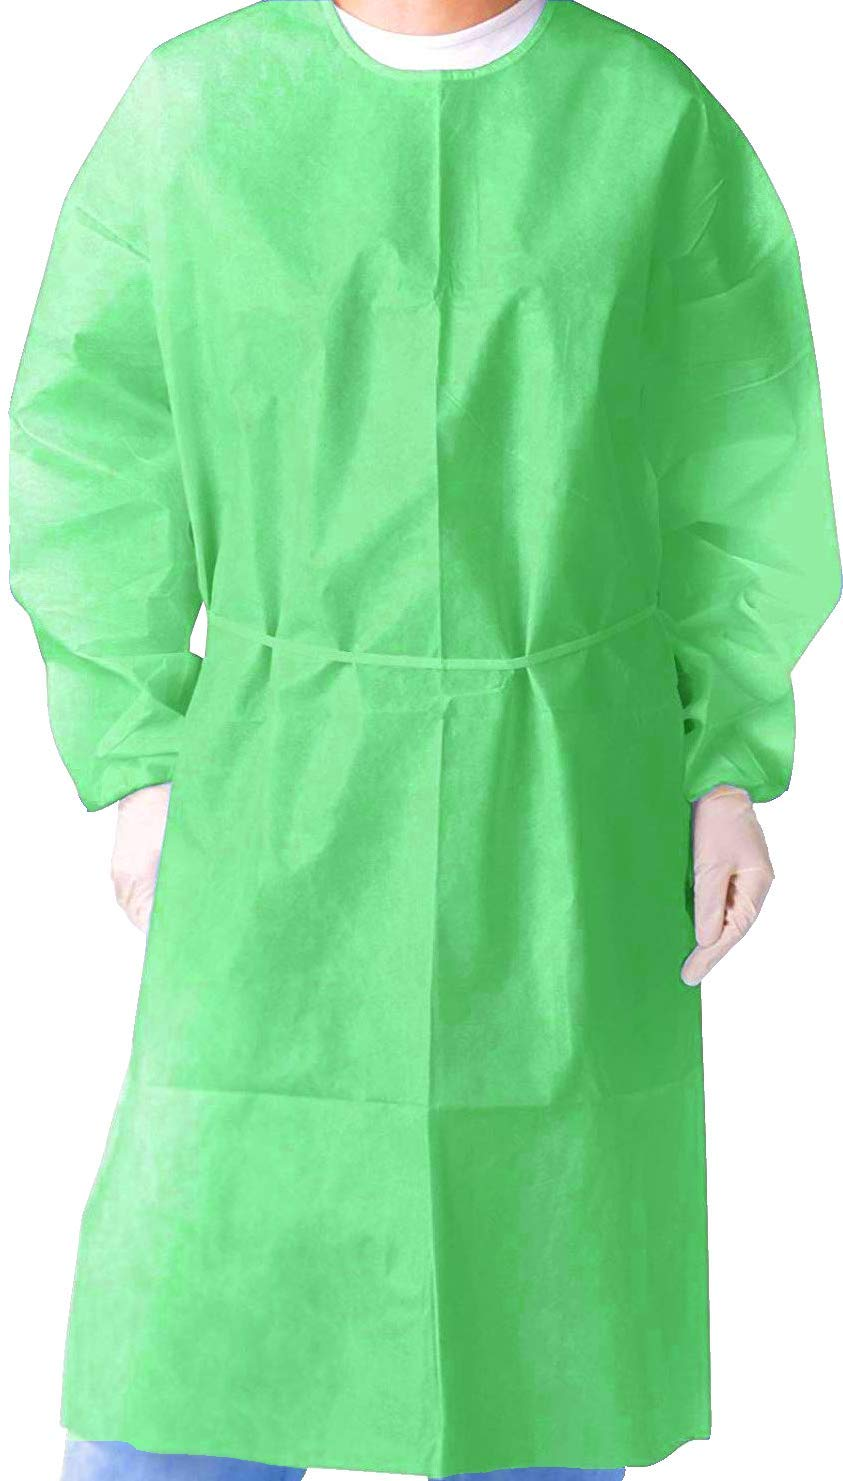 Splash Resistant one size fits all Isolation Gown with Elastic Cuff -Disposable Non-Woven White- Case//50 pcs